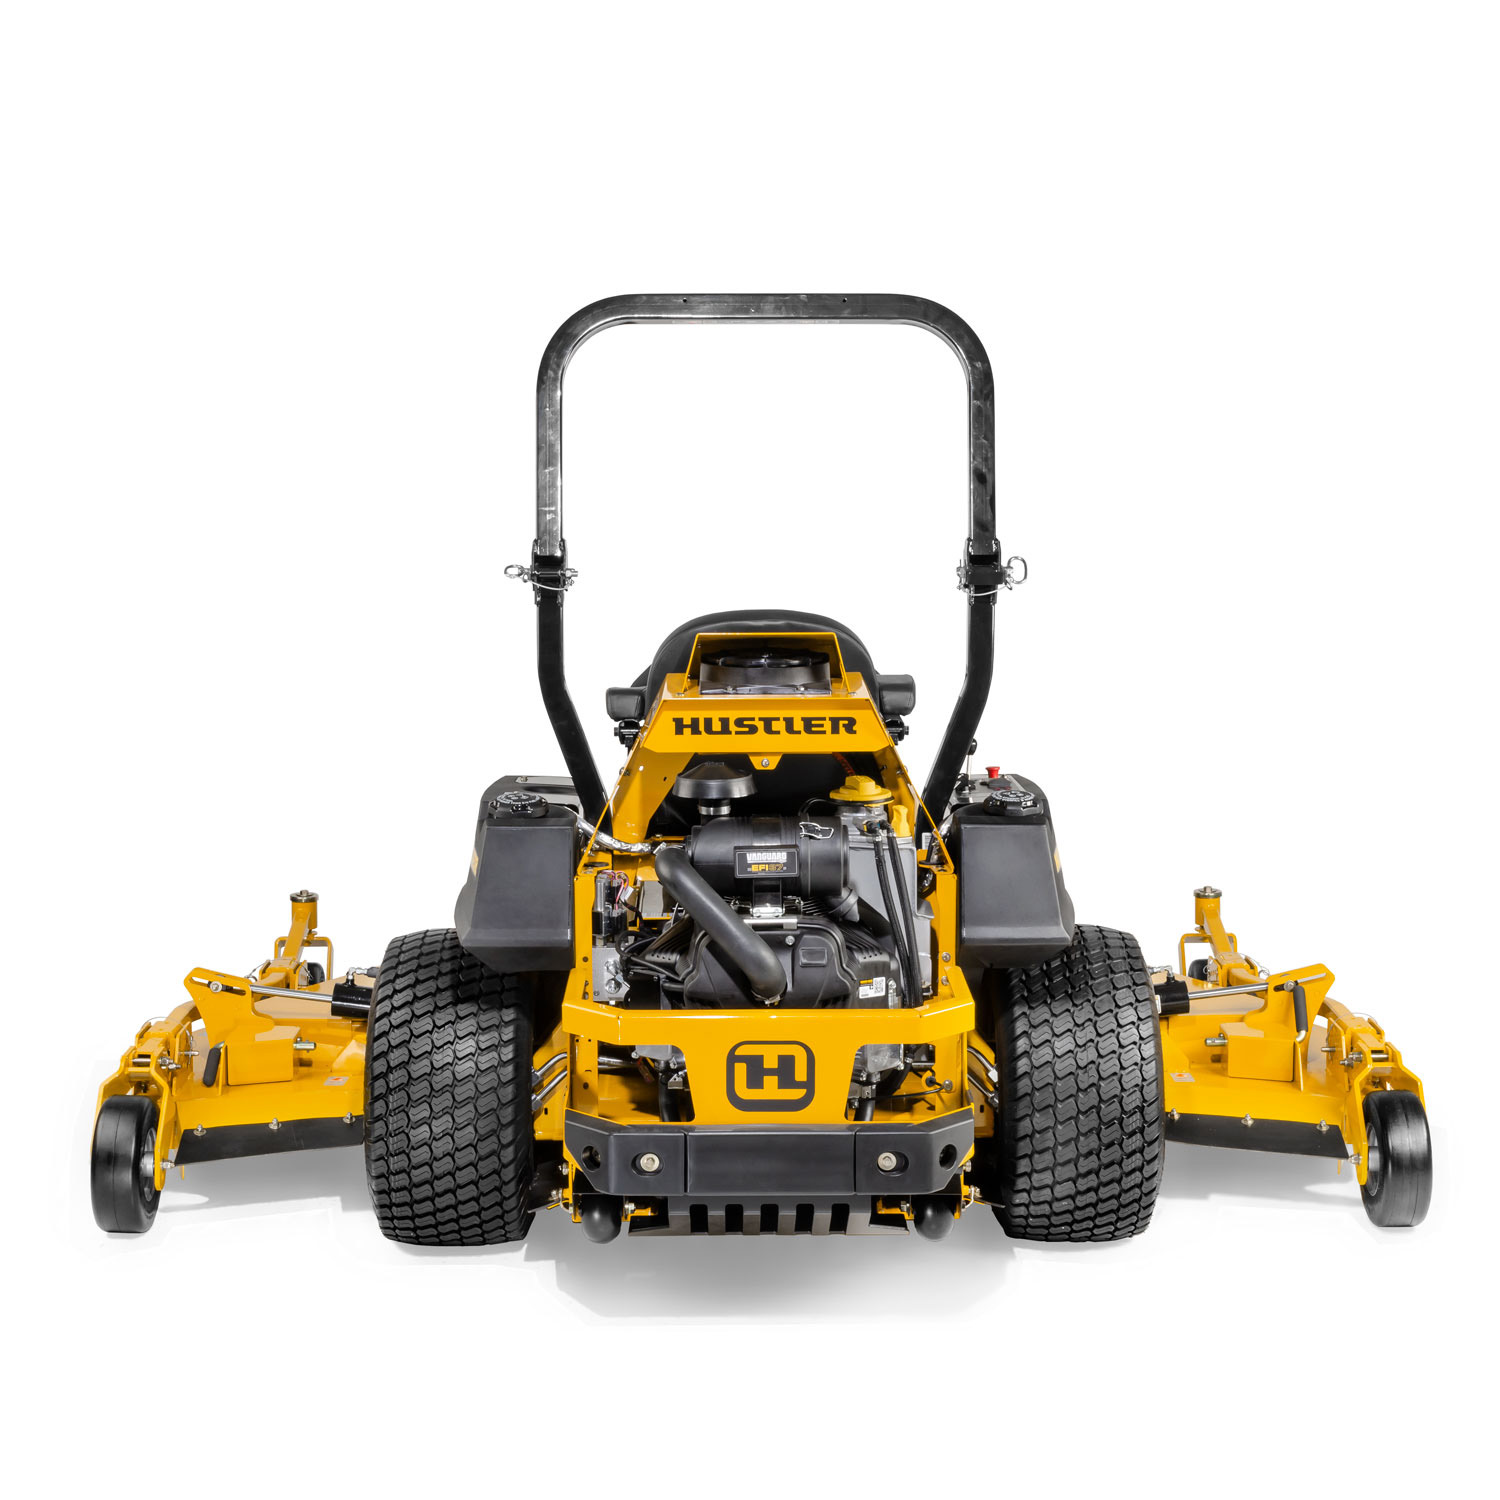 Image of the rear of a yellow wide area mid-mount mower